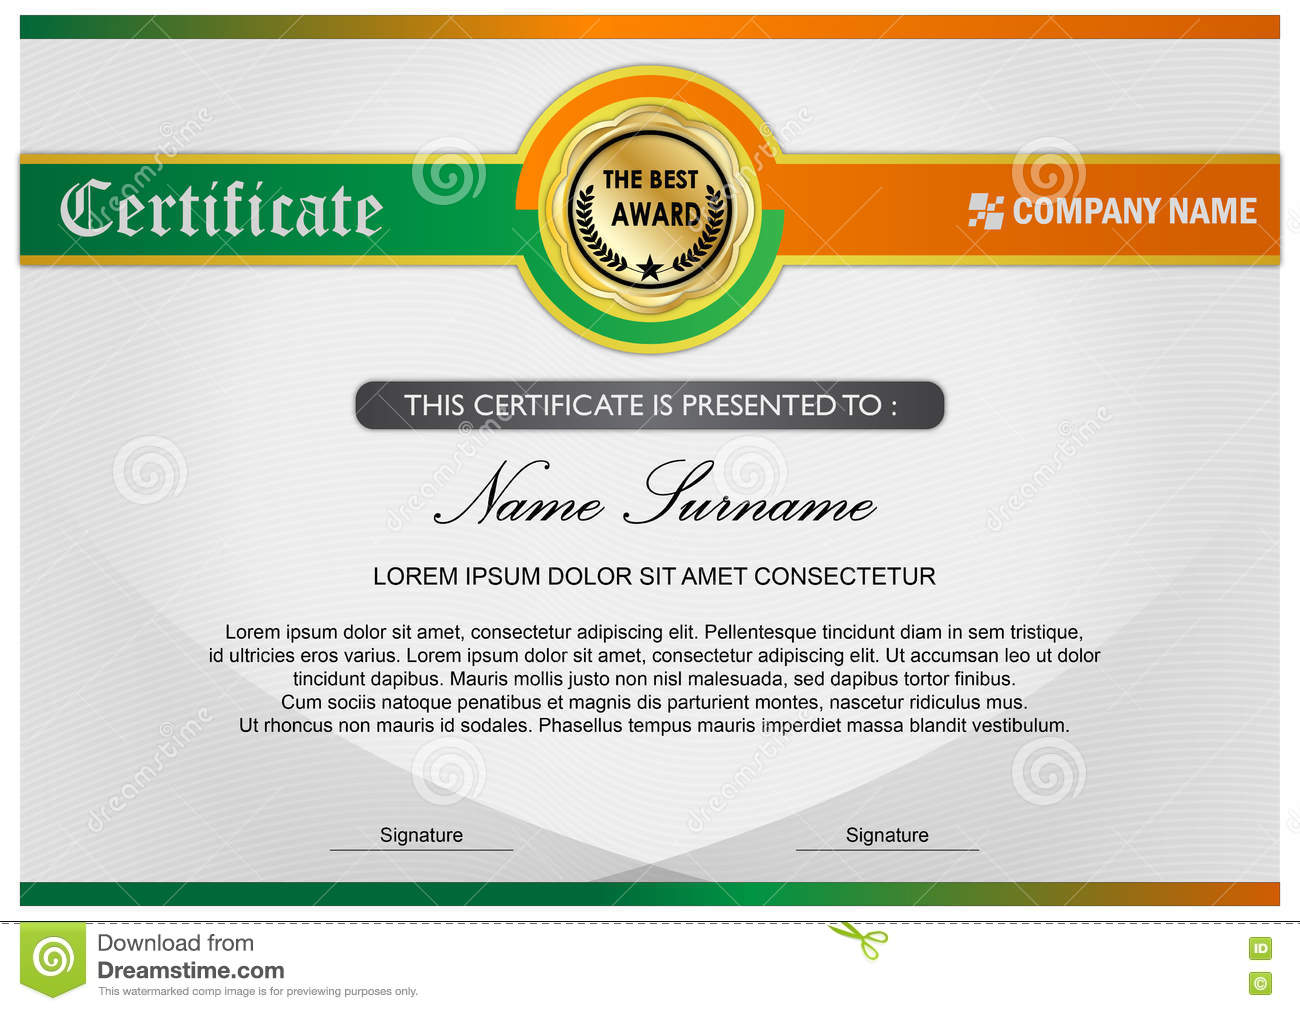 Diploma award certificate template green orange stock diploma award certificate template green orange yadclub Choice Image